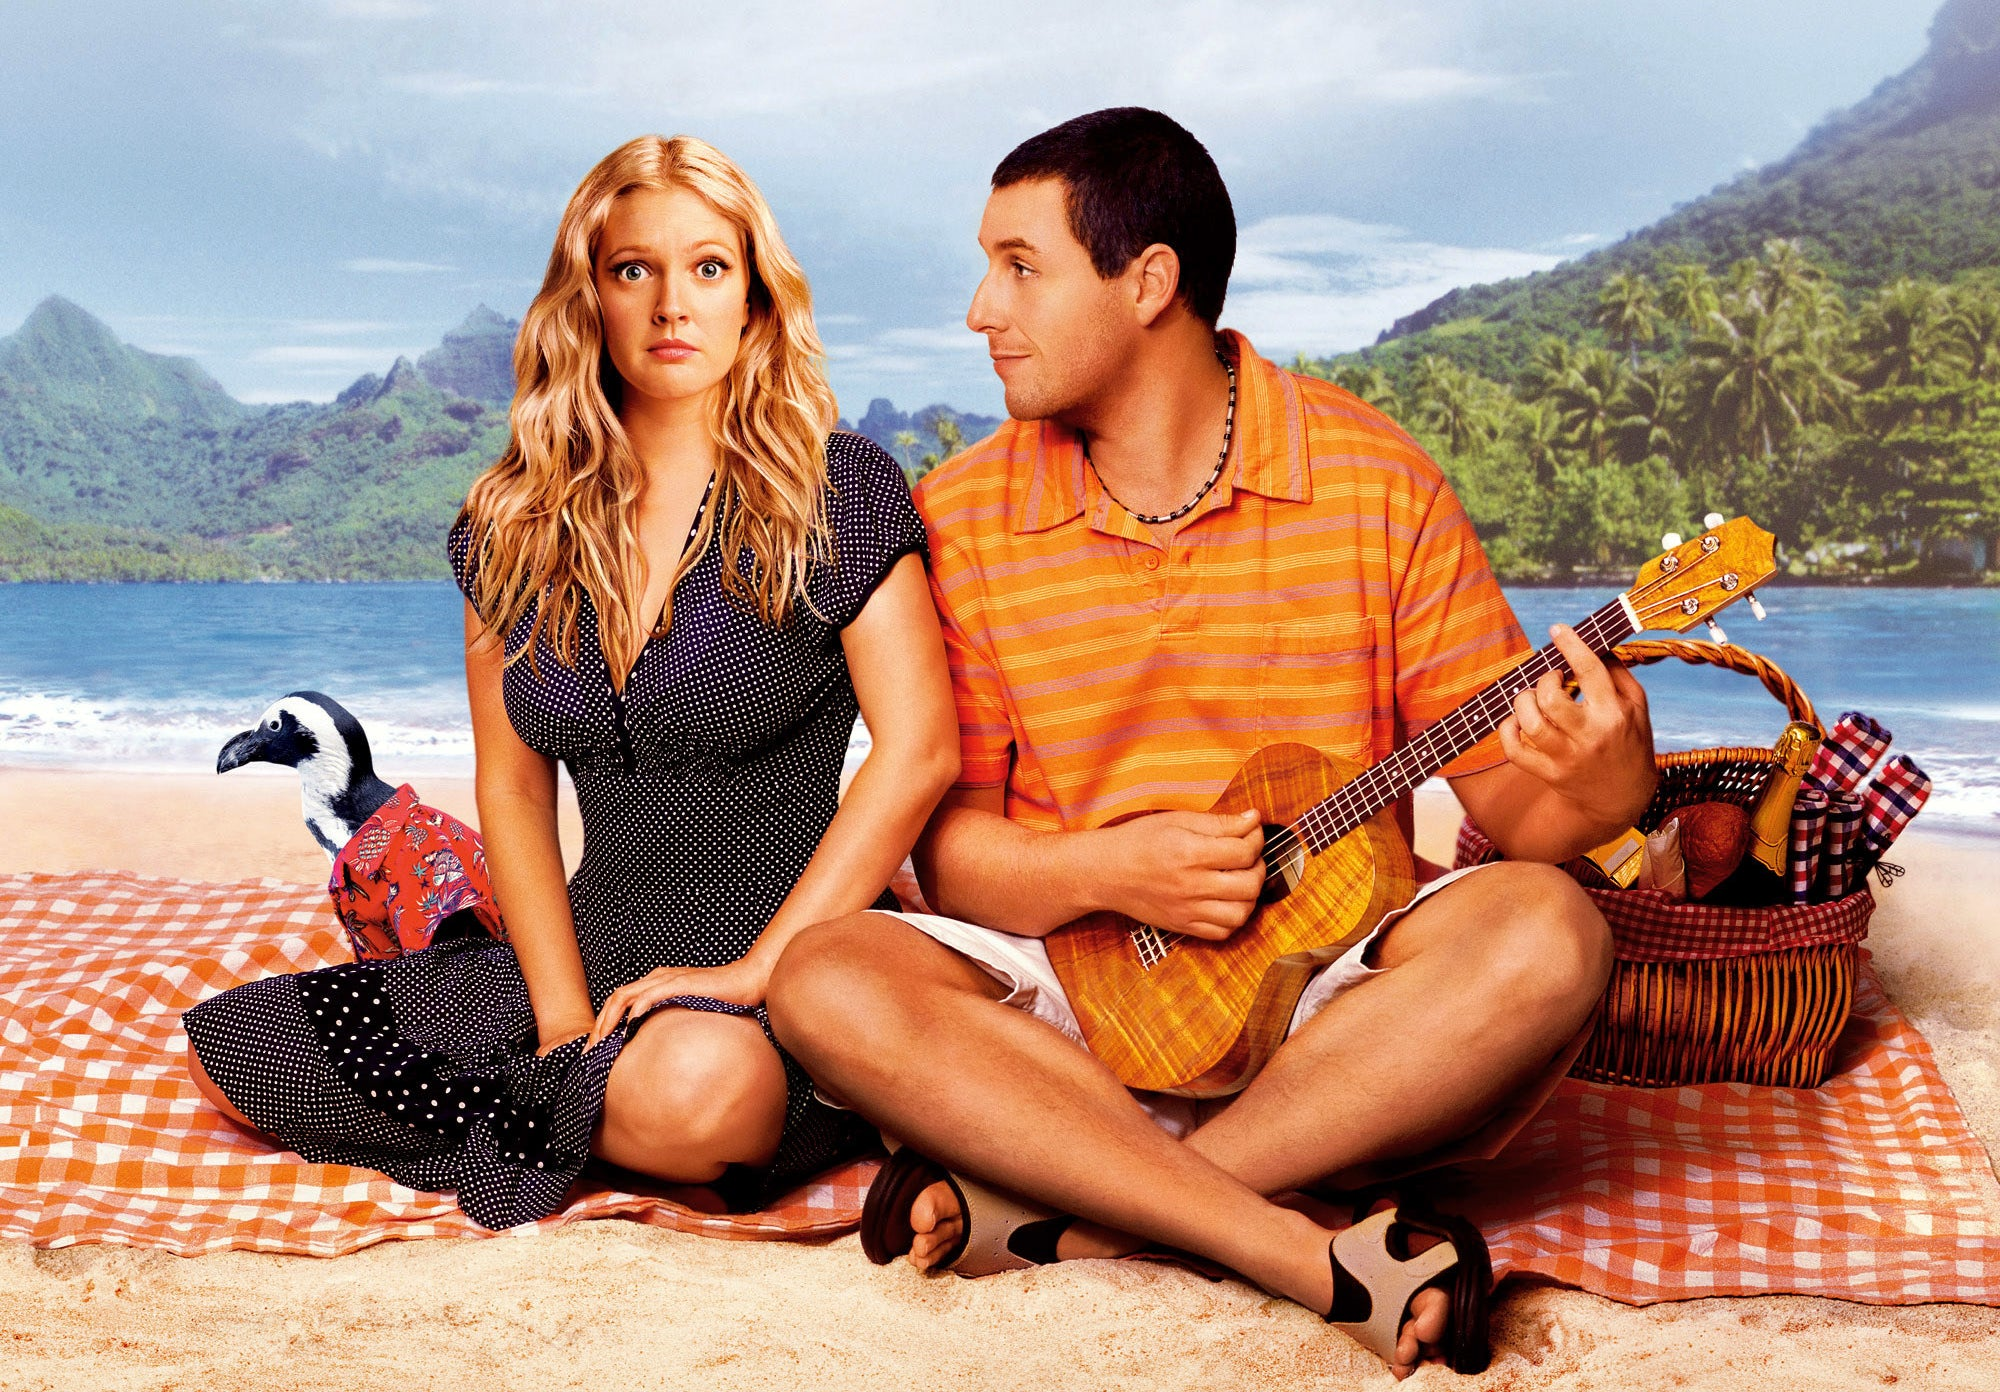 Henry and Lucy in the movie 50 first dates